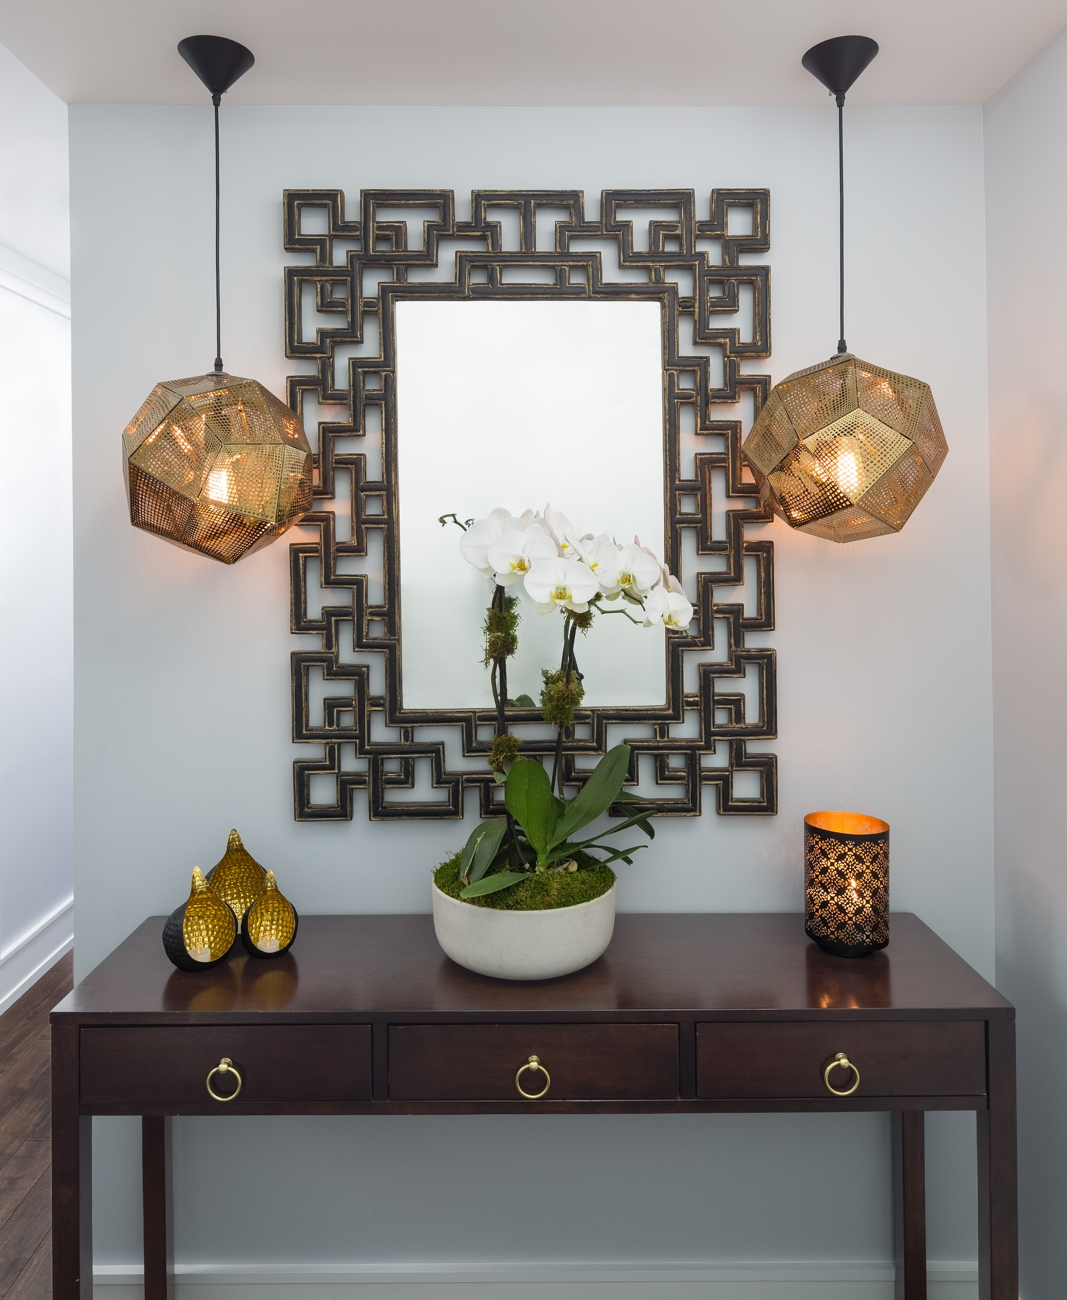 This entry foyer is perfection. The orchid in the middle of the mirror flanked by the pendant lights creates a playful organic symmetry. The white base breaks the darkness of the console table and adds a welcome contrast.